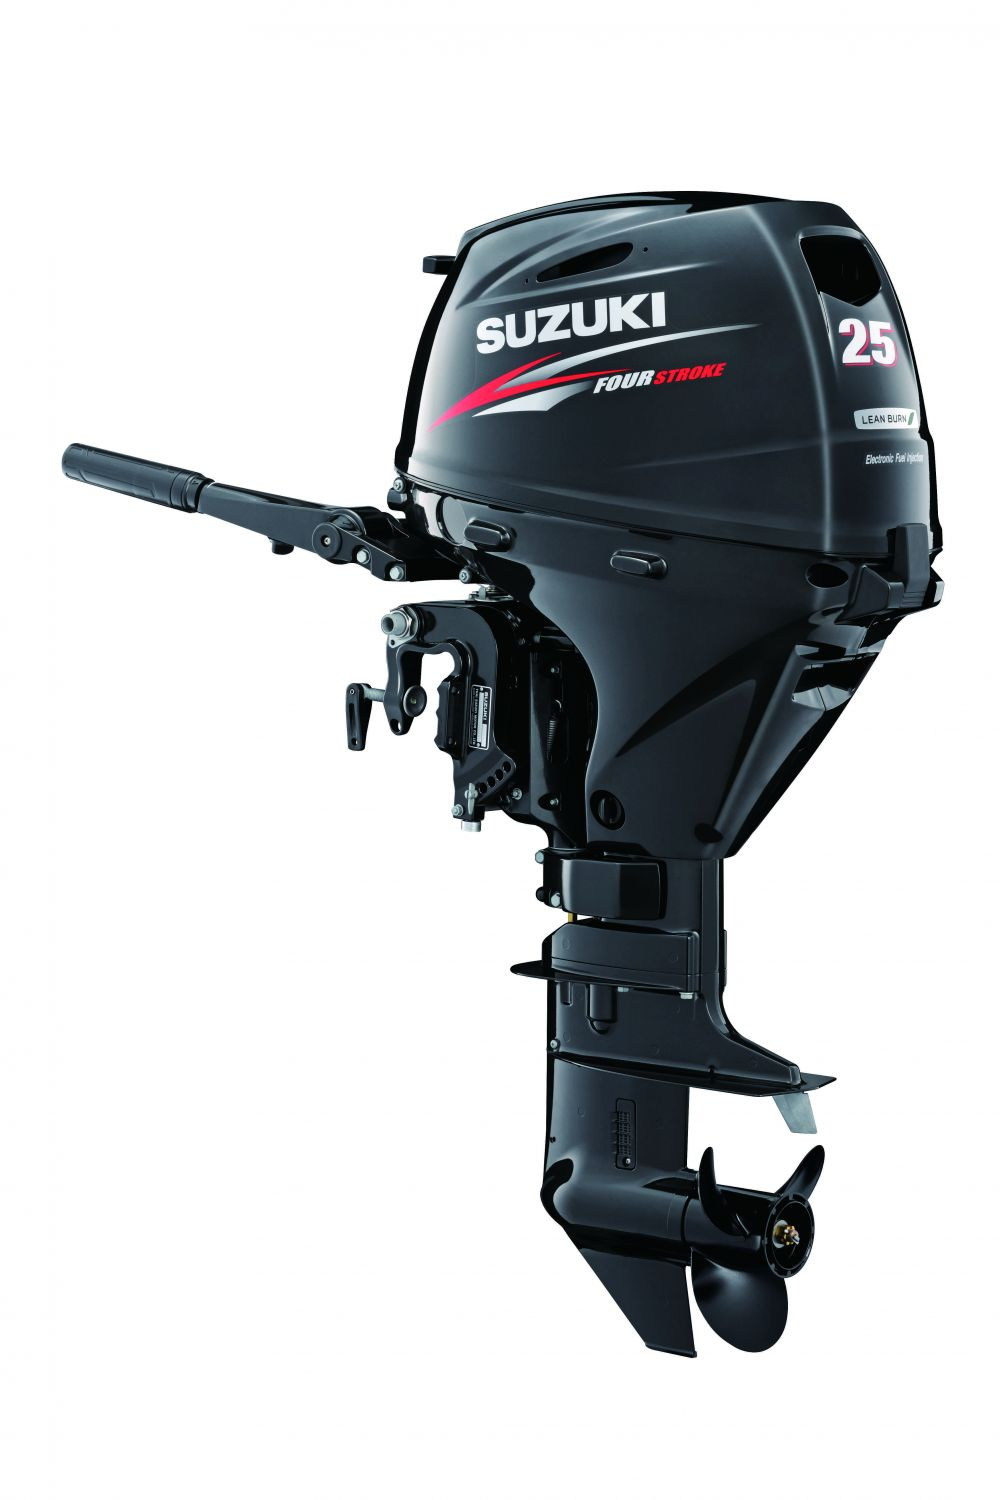 Suzuki DF25A Four Stroke Marine outboard engine